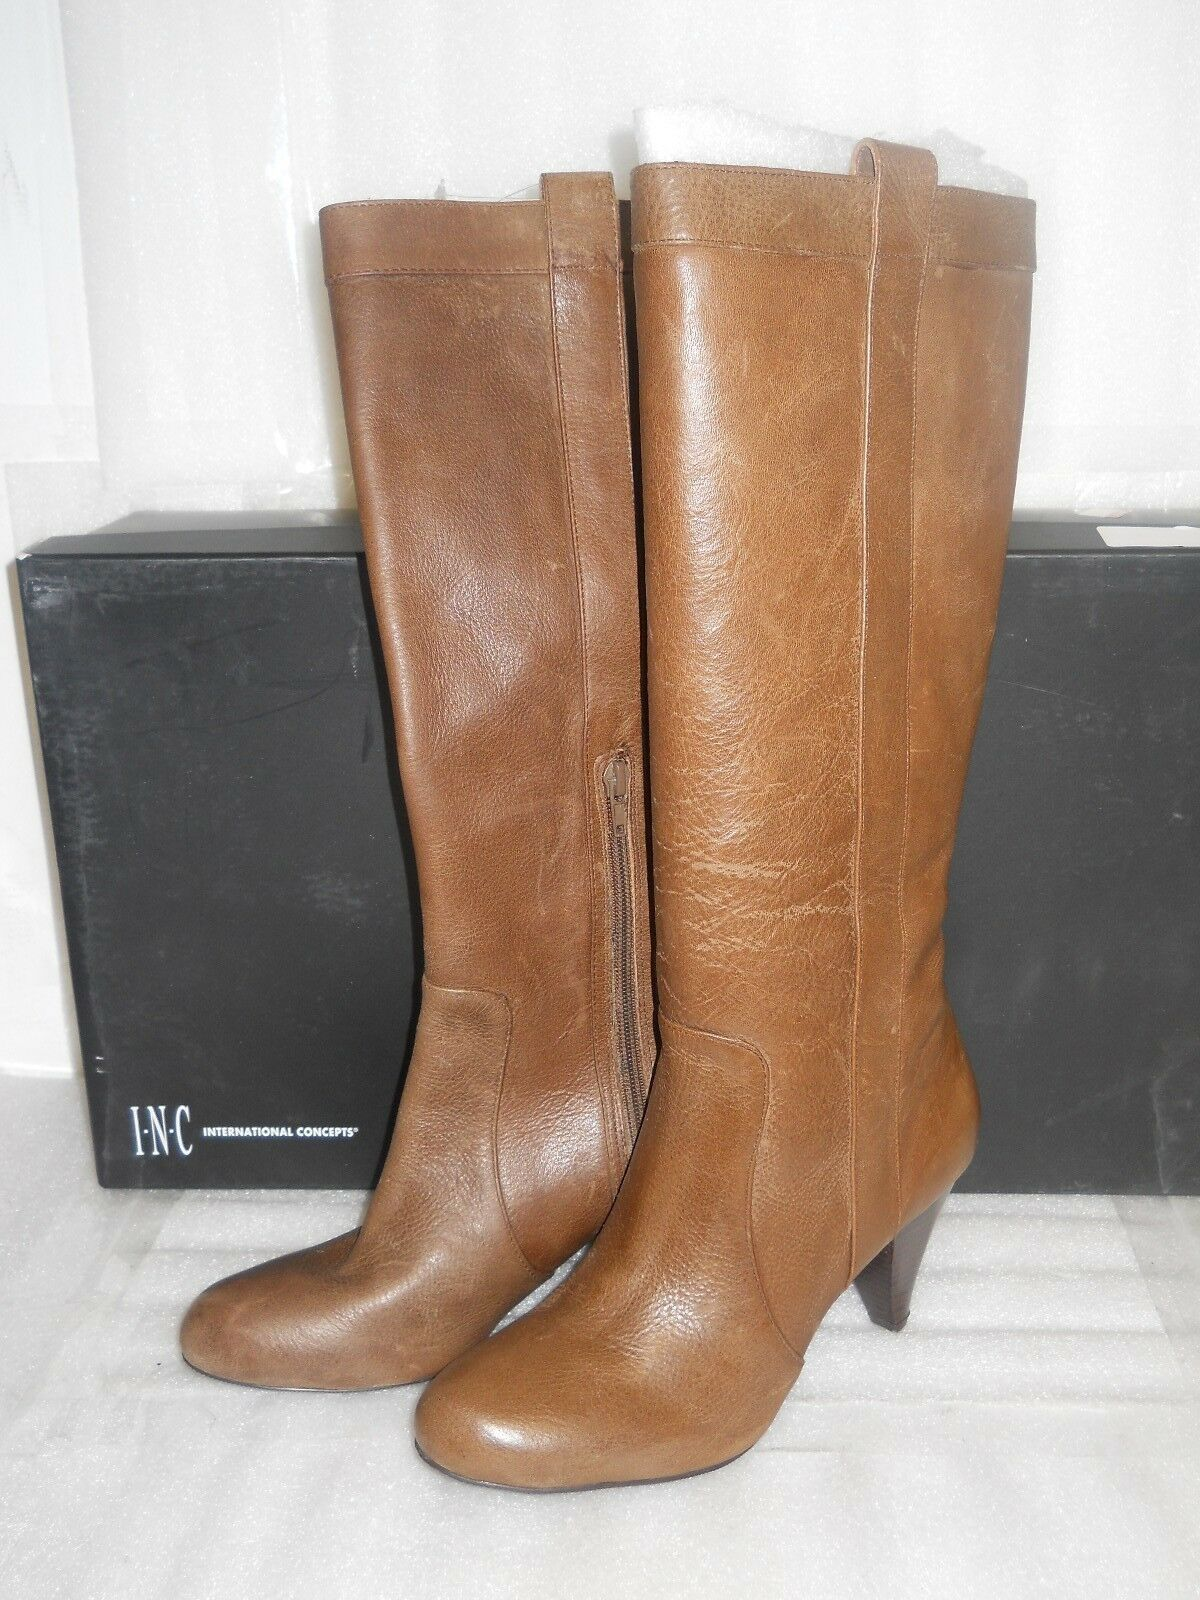 INC International Concepts New Womens Trisha Light Leather Brown Boots 6 M shoes